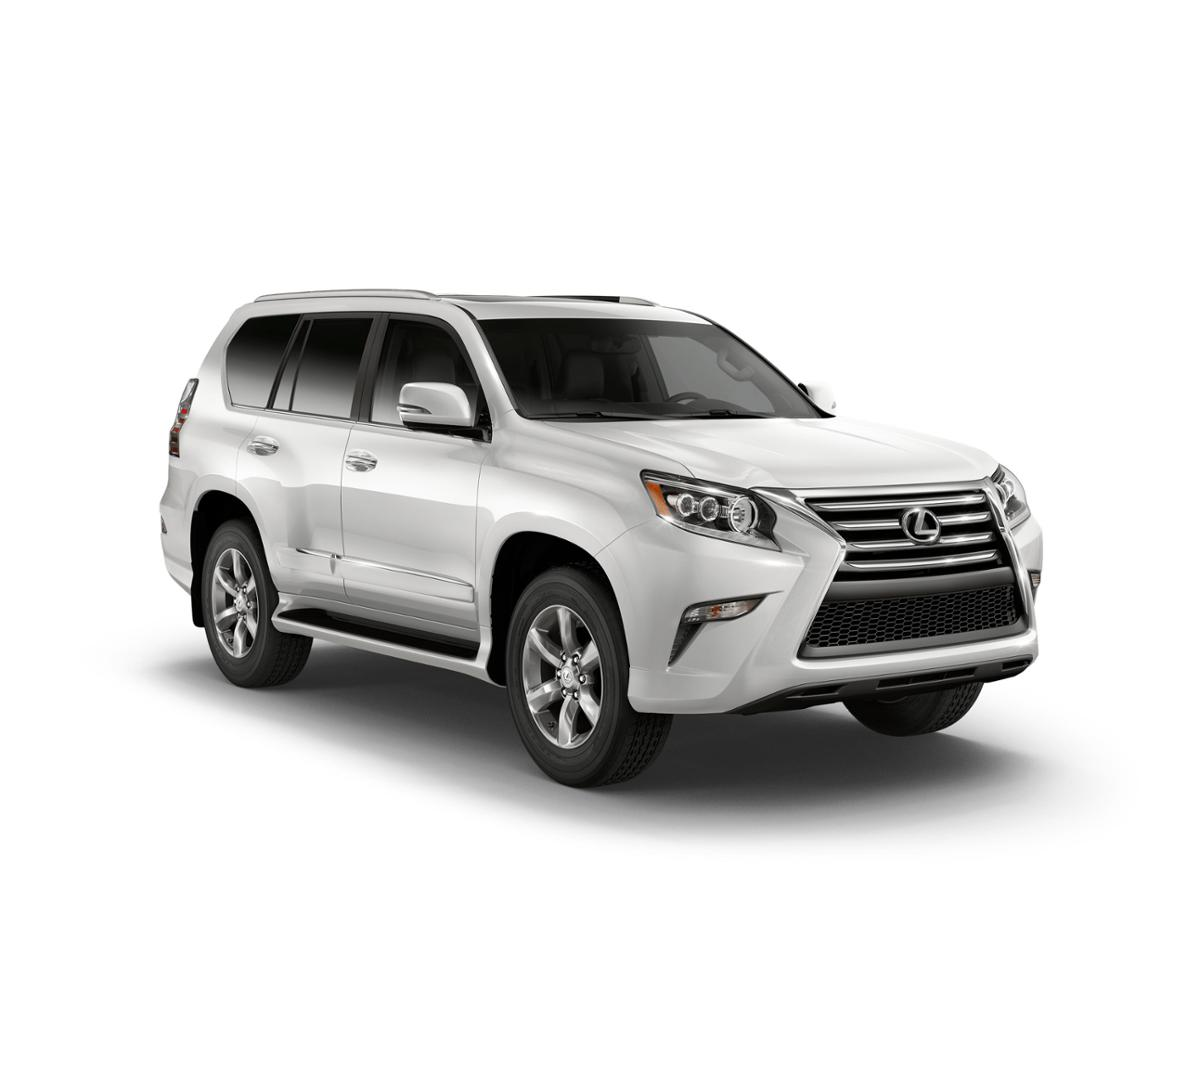 2018 Lexus GX 460 Vehicle Photo in Bedford, NH 03110